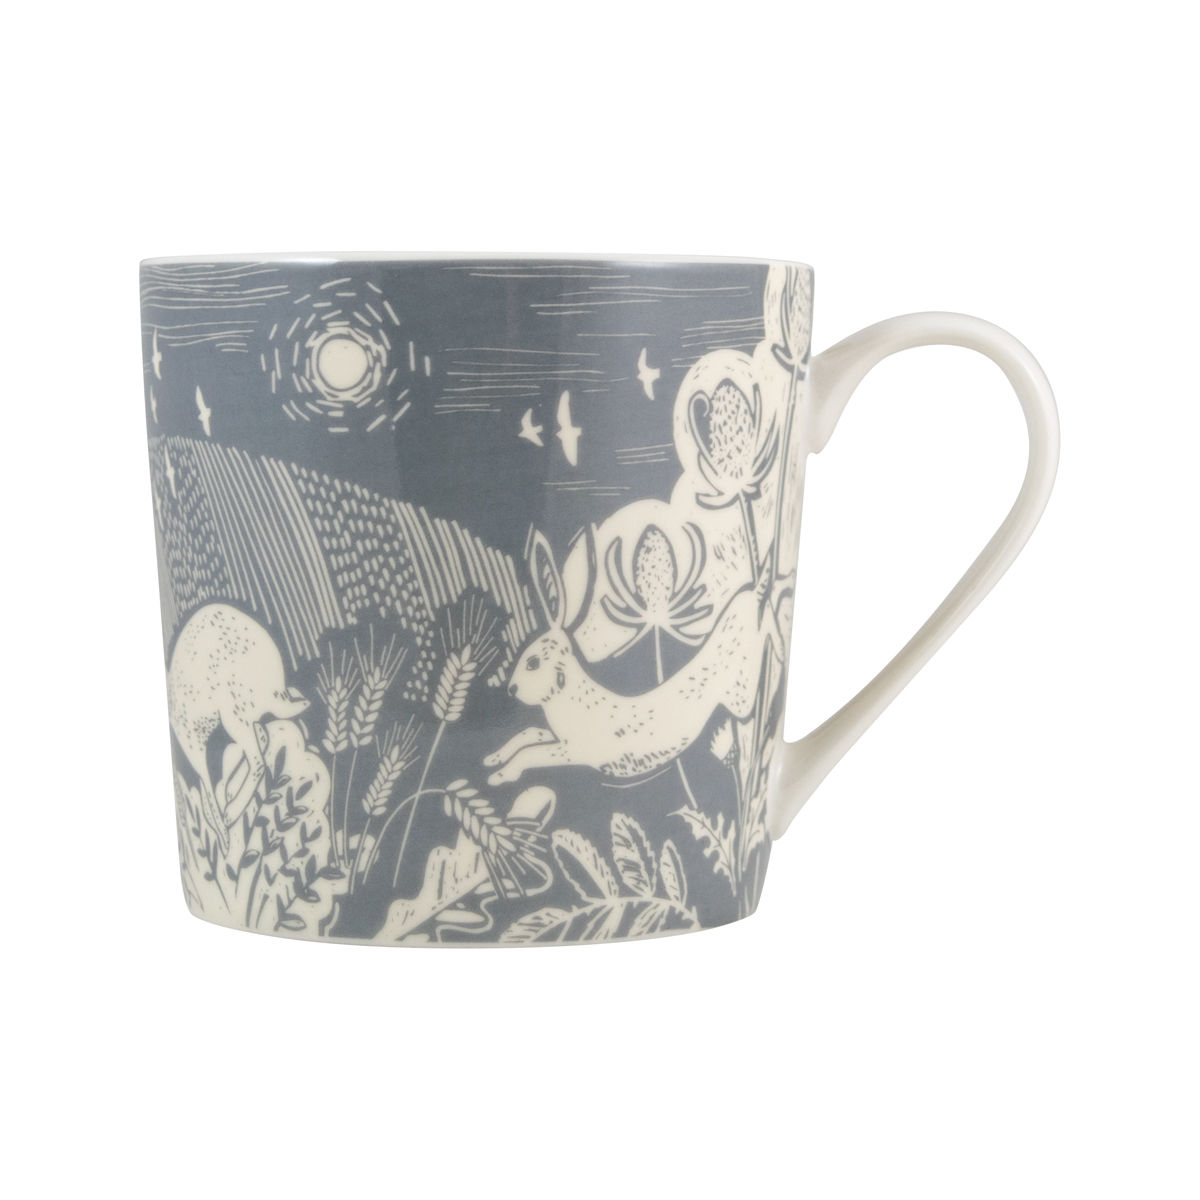 Hare Artisan Mug, Grey - product images  of